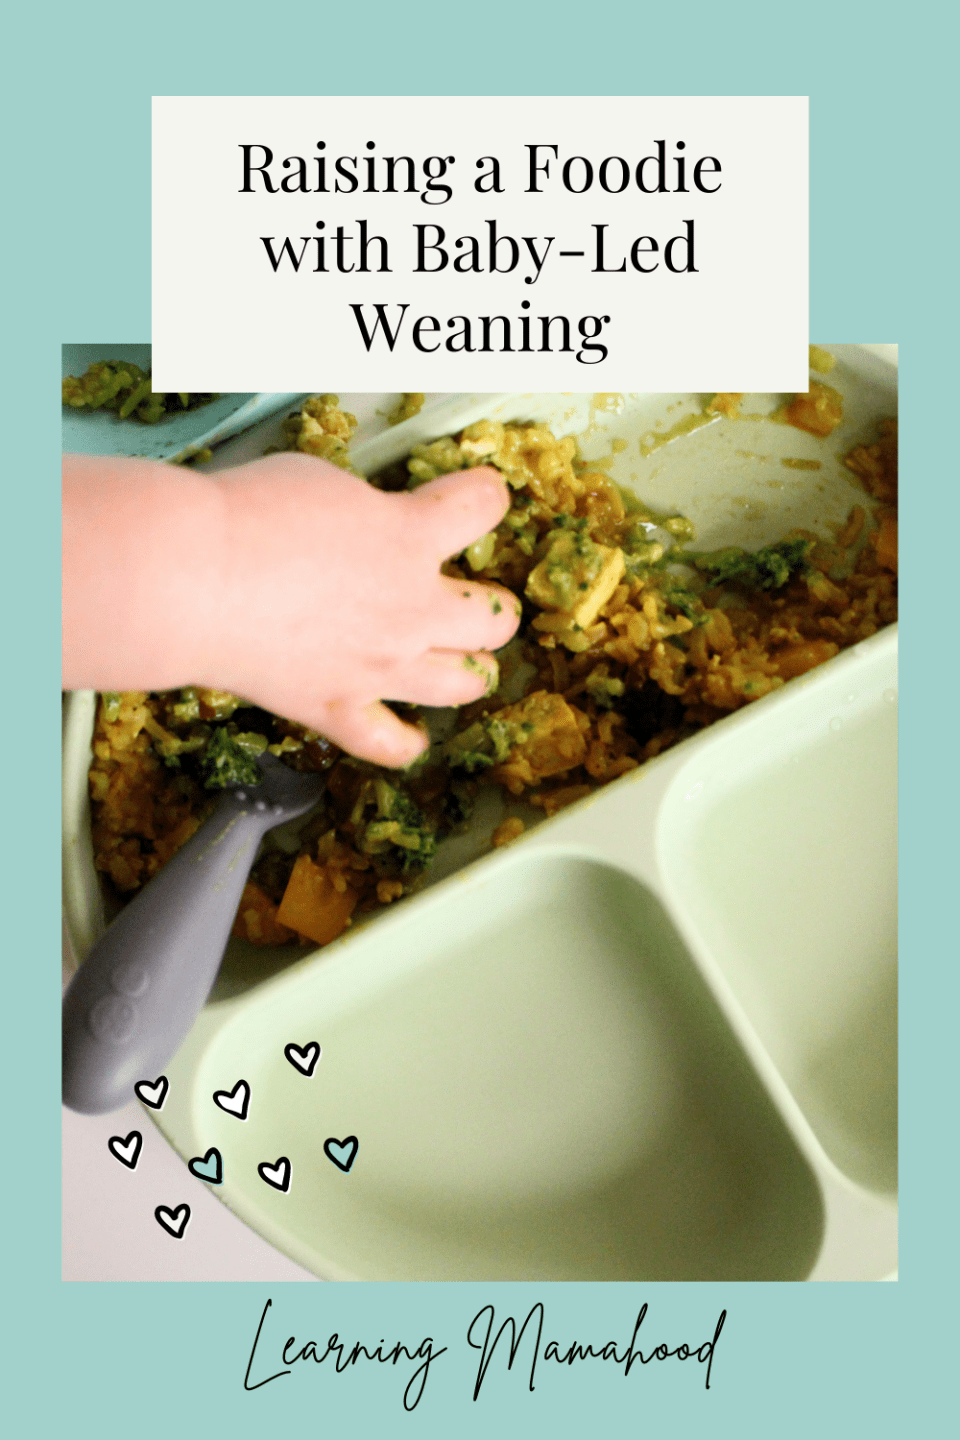 Raising a Foodie with Baby-Led Weaning - Learning Mamahood (pin)